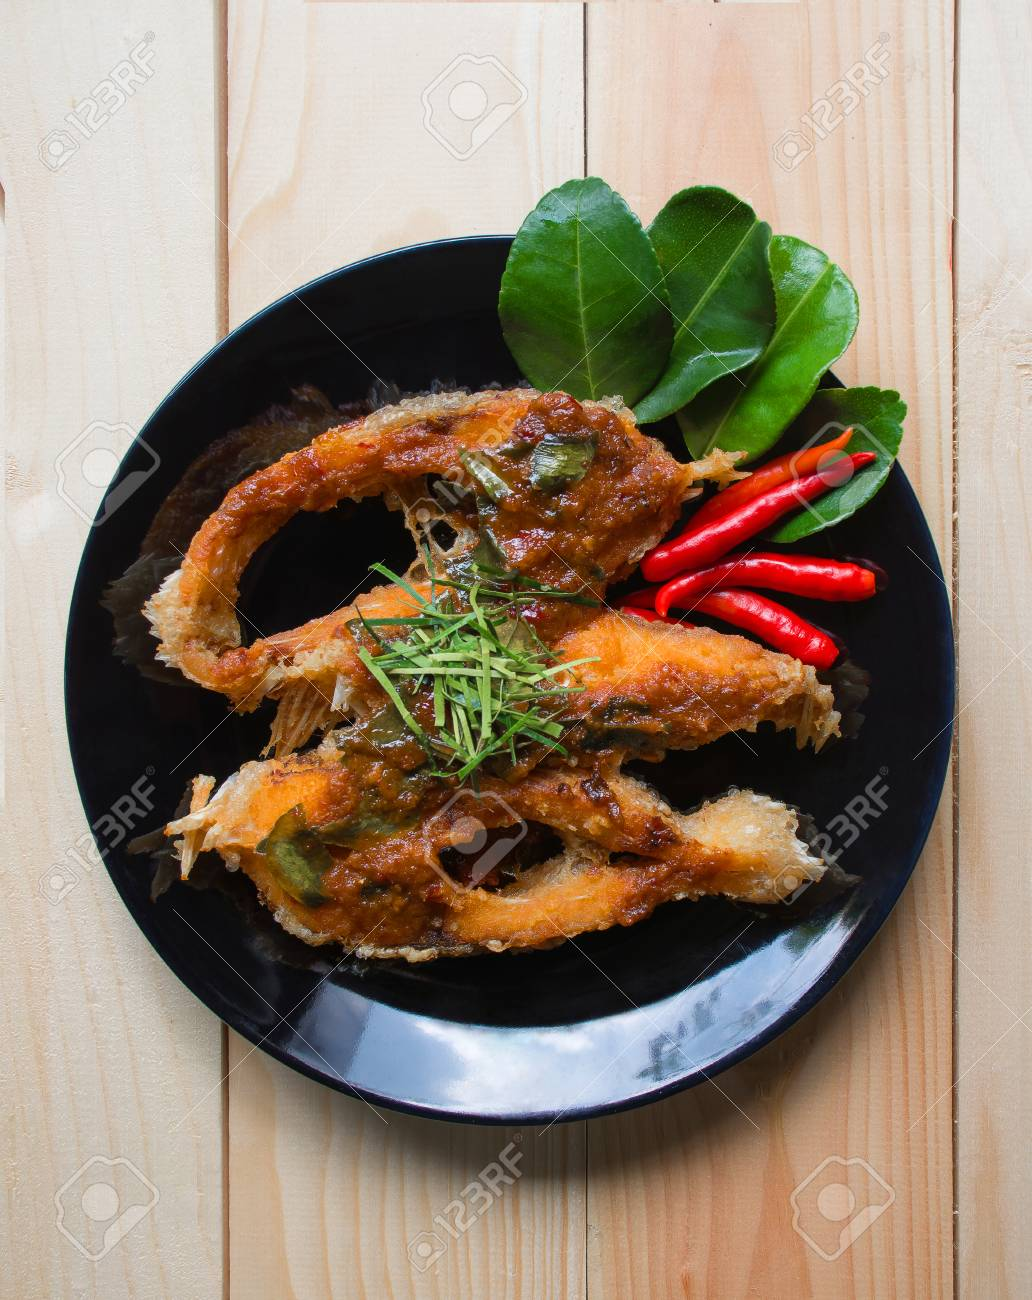 Fried Fish With Chili Sauce On A Black Plate Thai Food Style Stock Photo Picture And Royalty Free Image Image 50507398